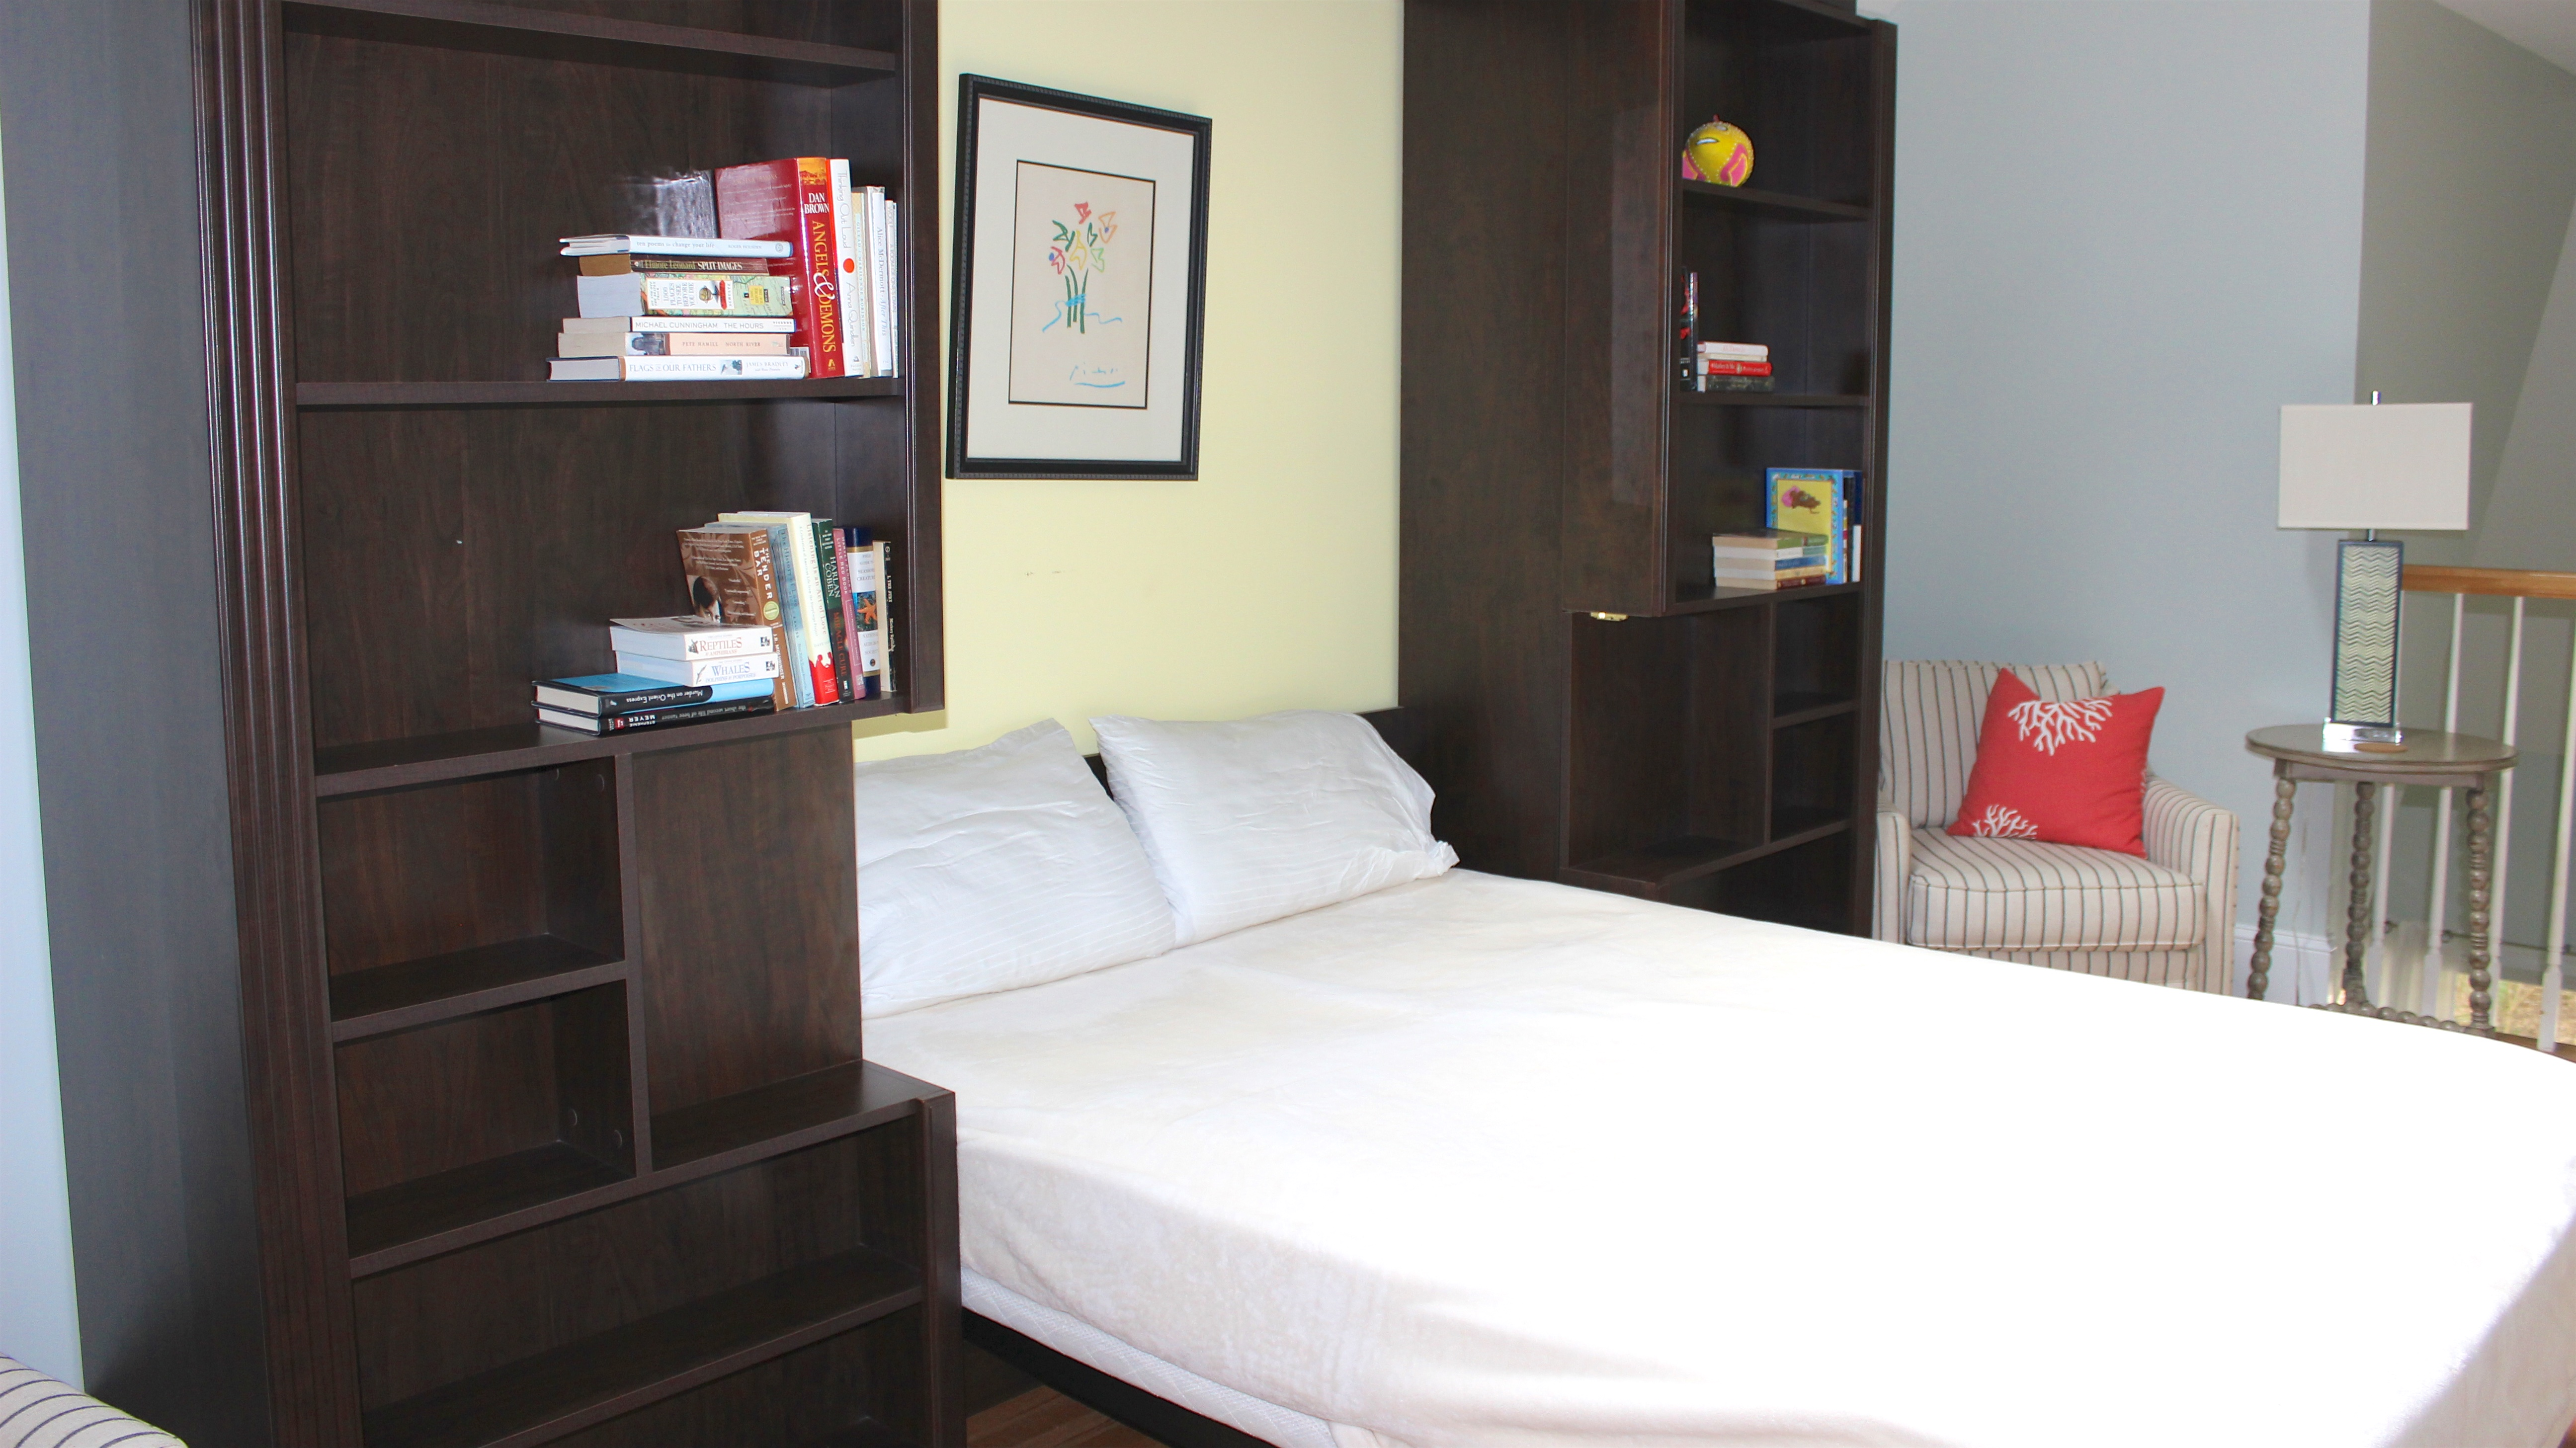 The bookcase hides a queen murphy bed.